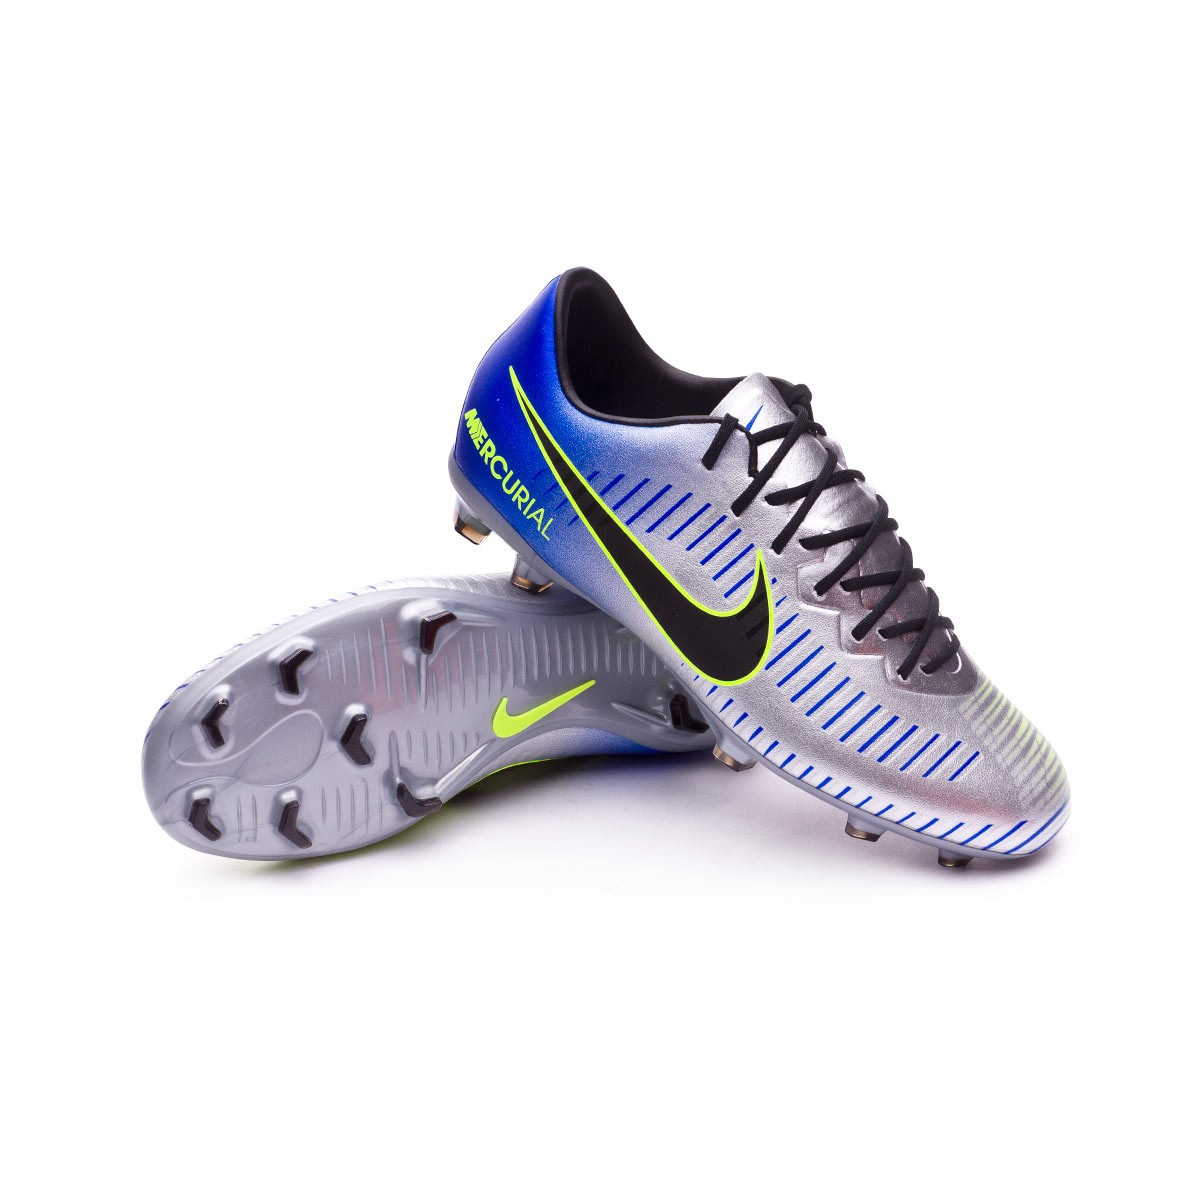 info for 9bf1d 551b2 Mercurial Vapor XI FG Neymar Niño Racer blue-Black-Chrome-Volt